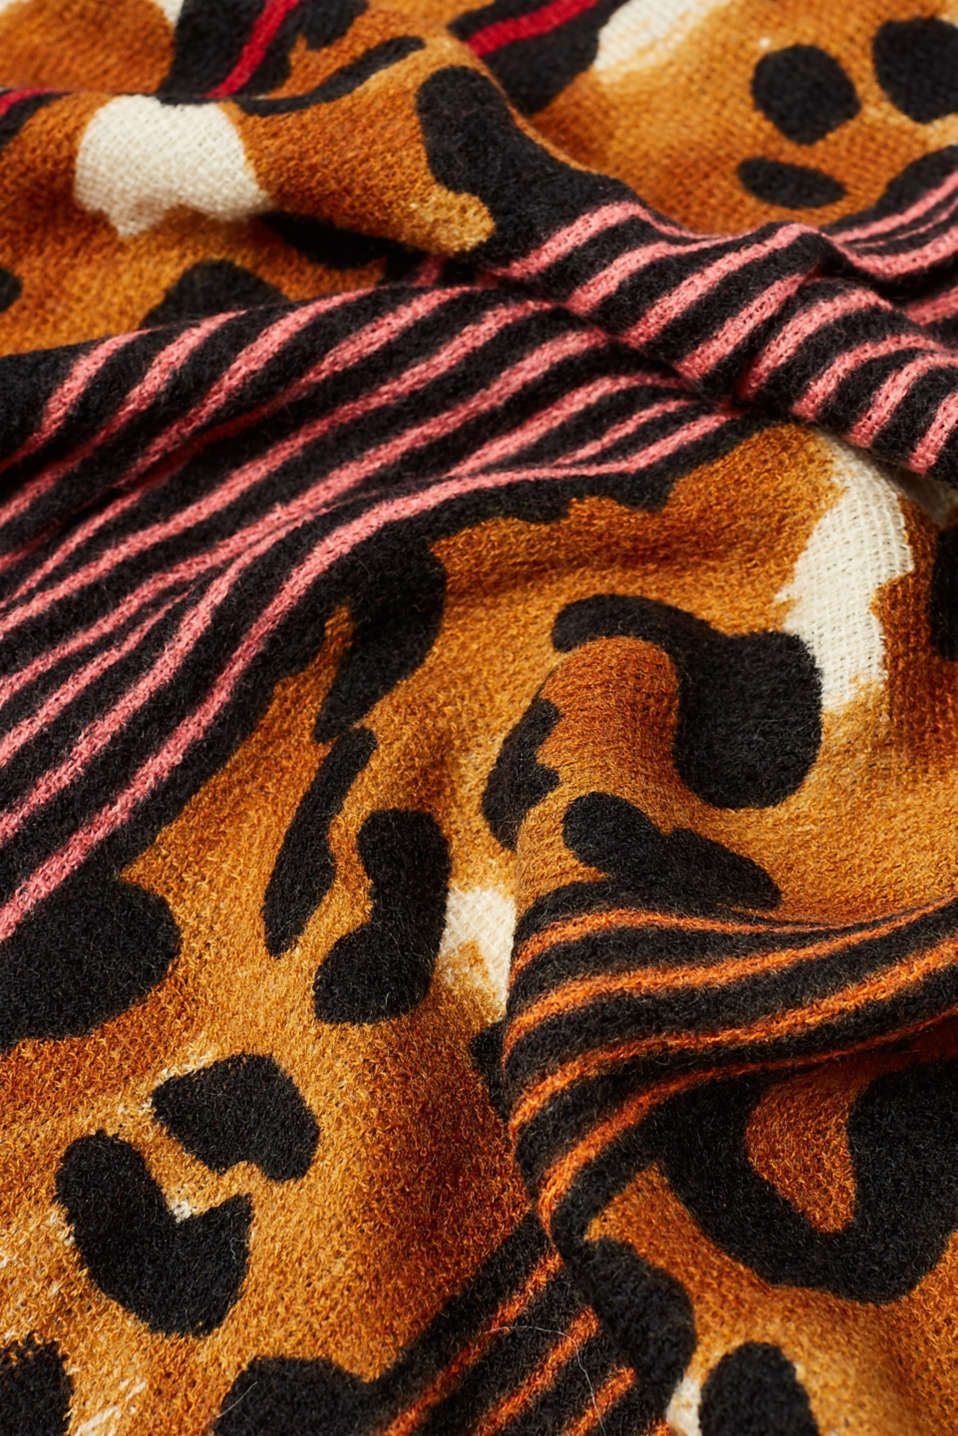 Scarf with a bold mix of patterns